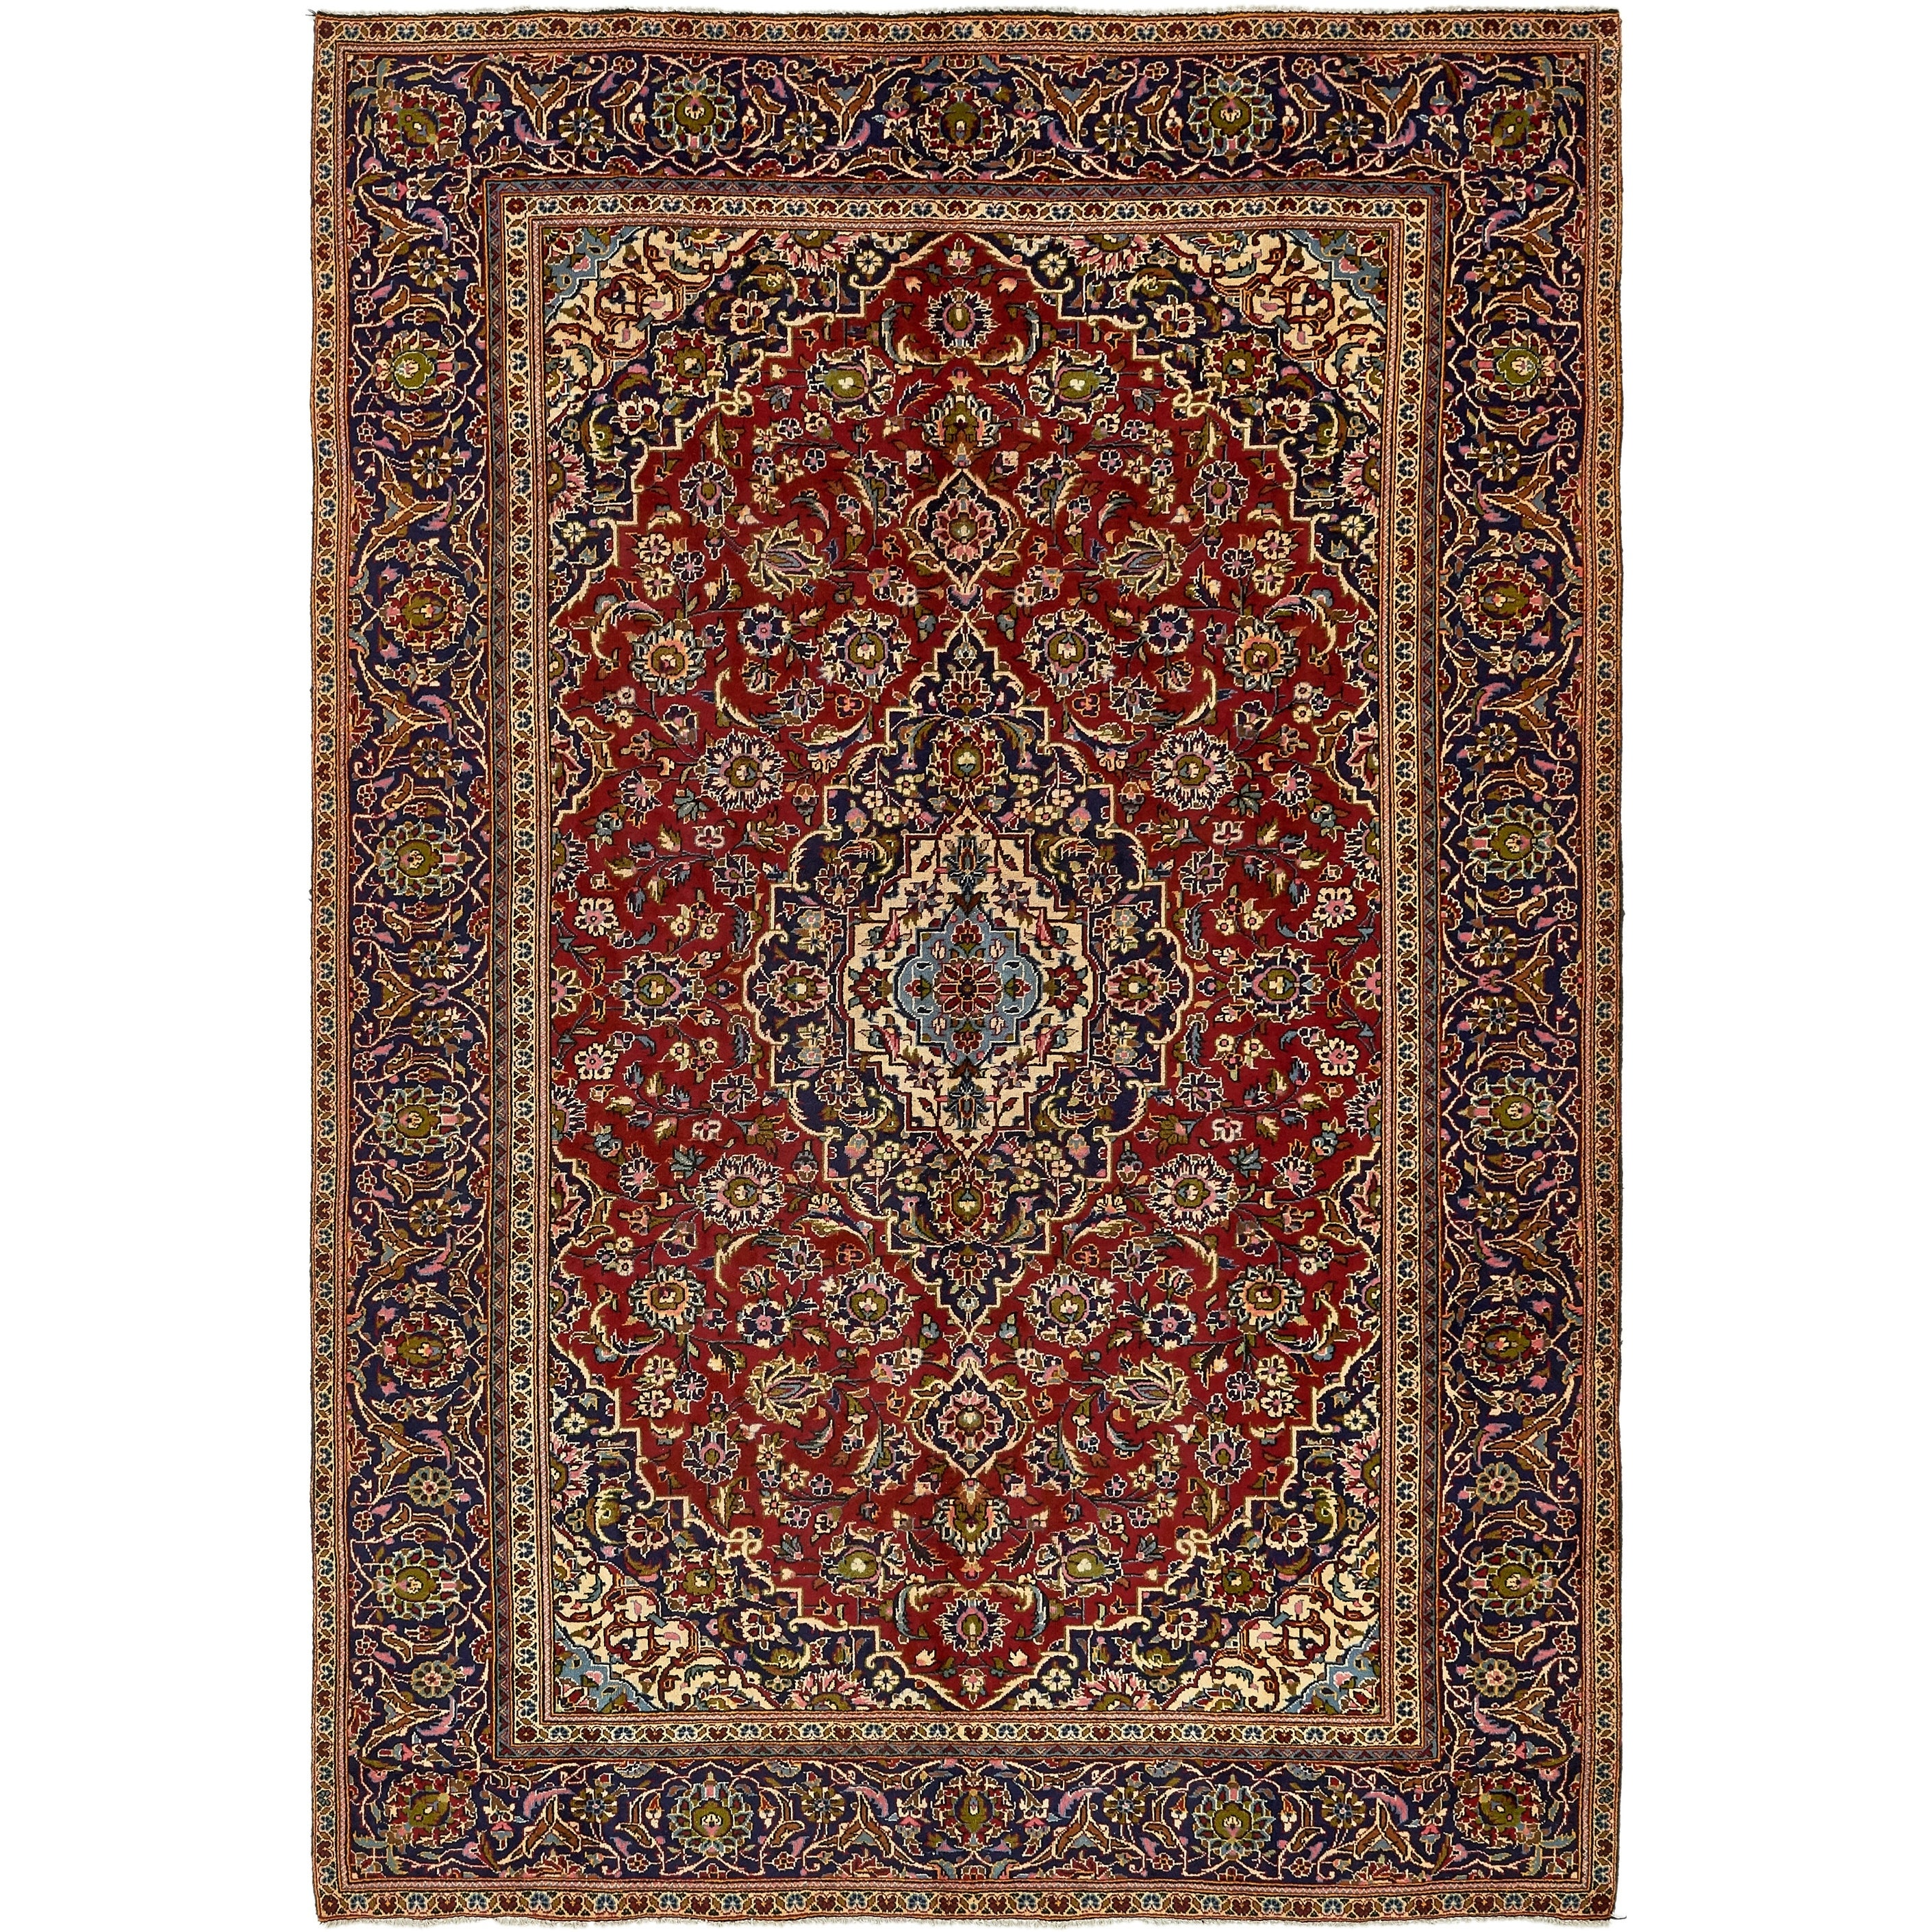 Hand Knotted Kashan Semi Antique Wool Area Rug - 7 8 x 11 (Red - 7 8 x 11)